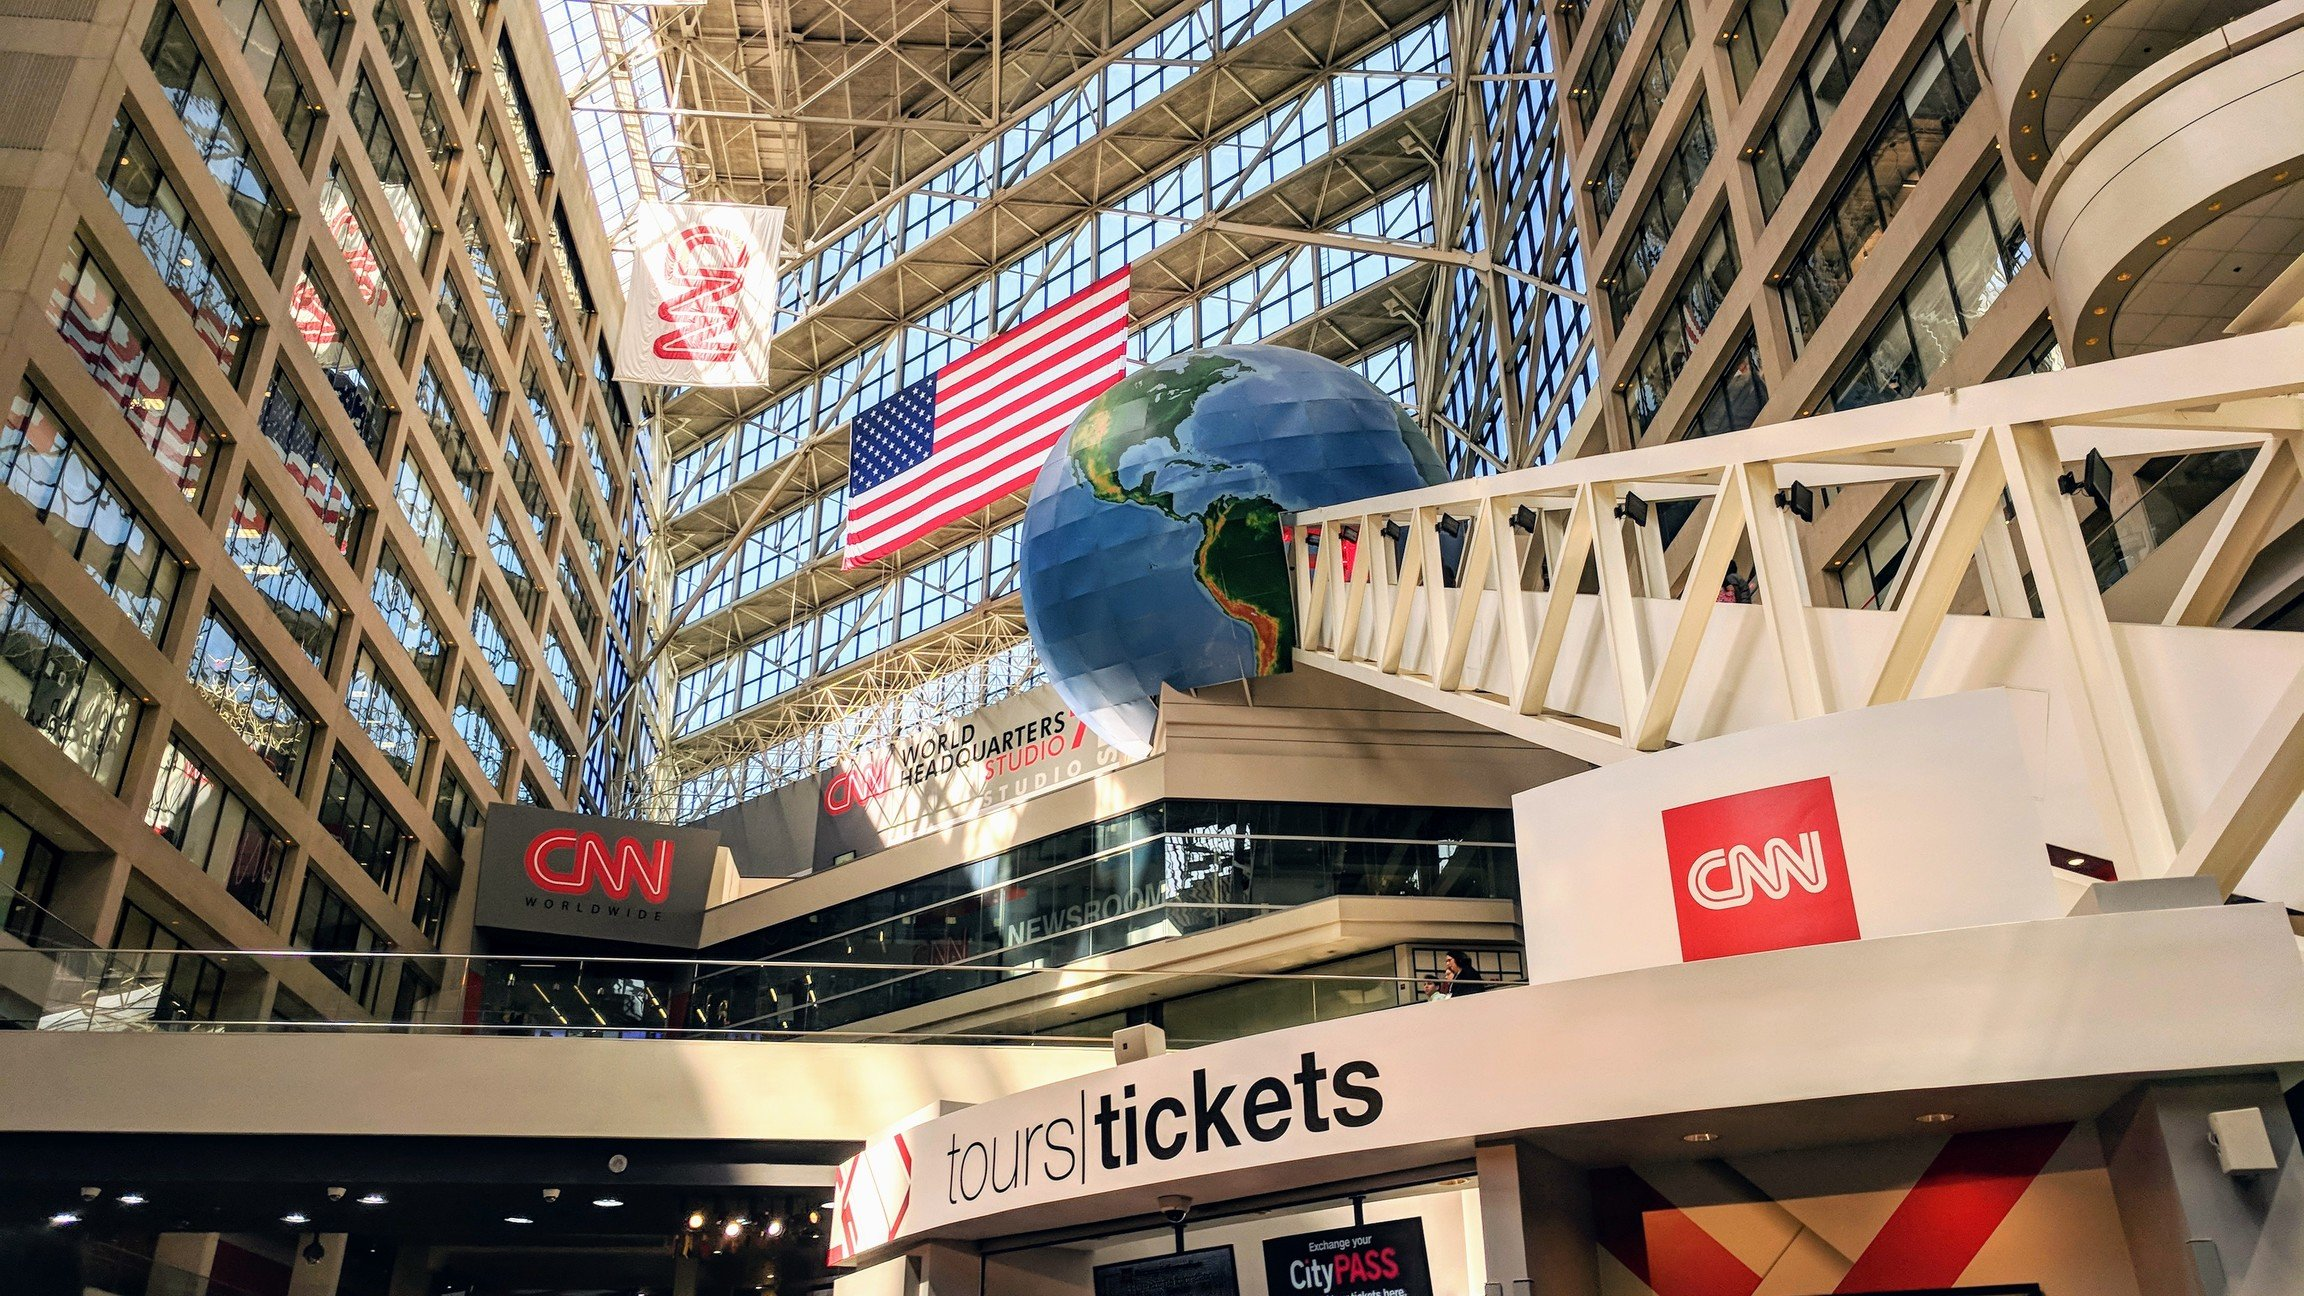 Building interior and ticket booth at CNN World Headquarters.